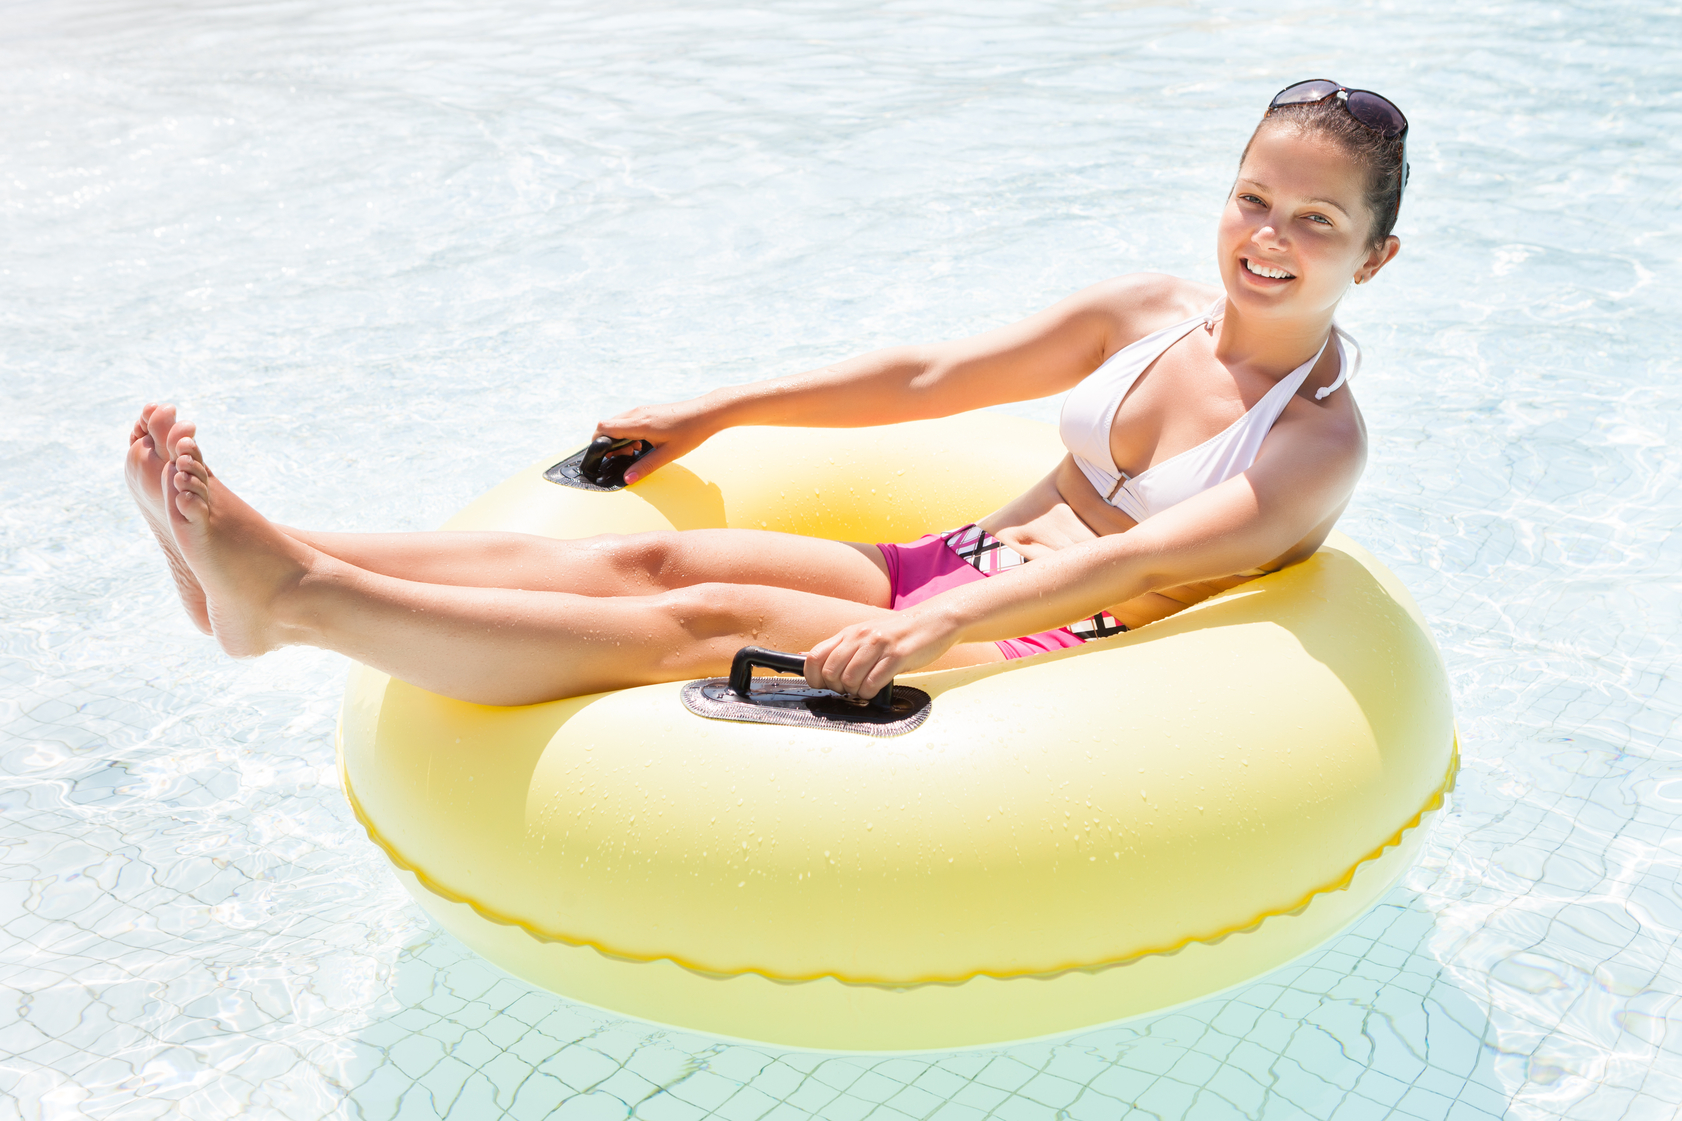 Woman on a floating inner tube